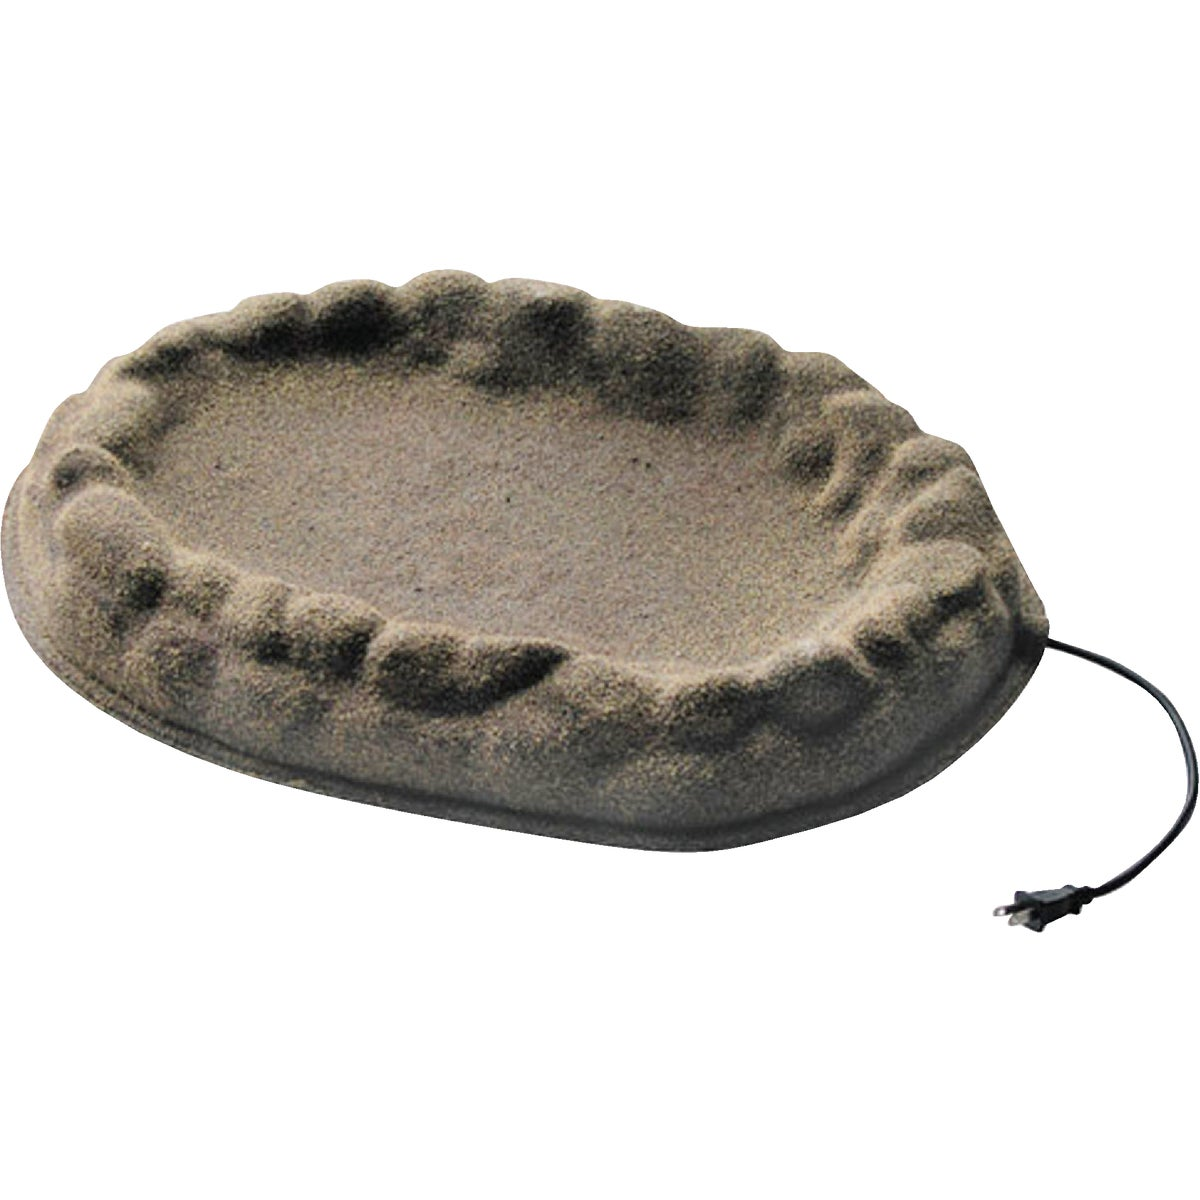 GROUND HEATED BIRDBATH - FS-1 by Farm Innovators Inc